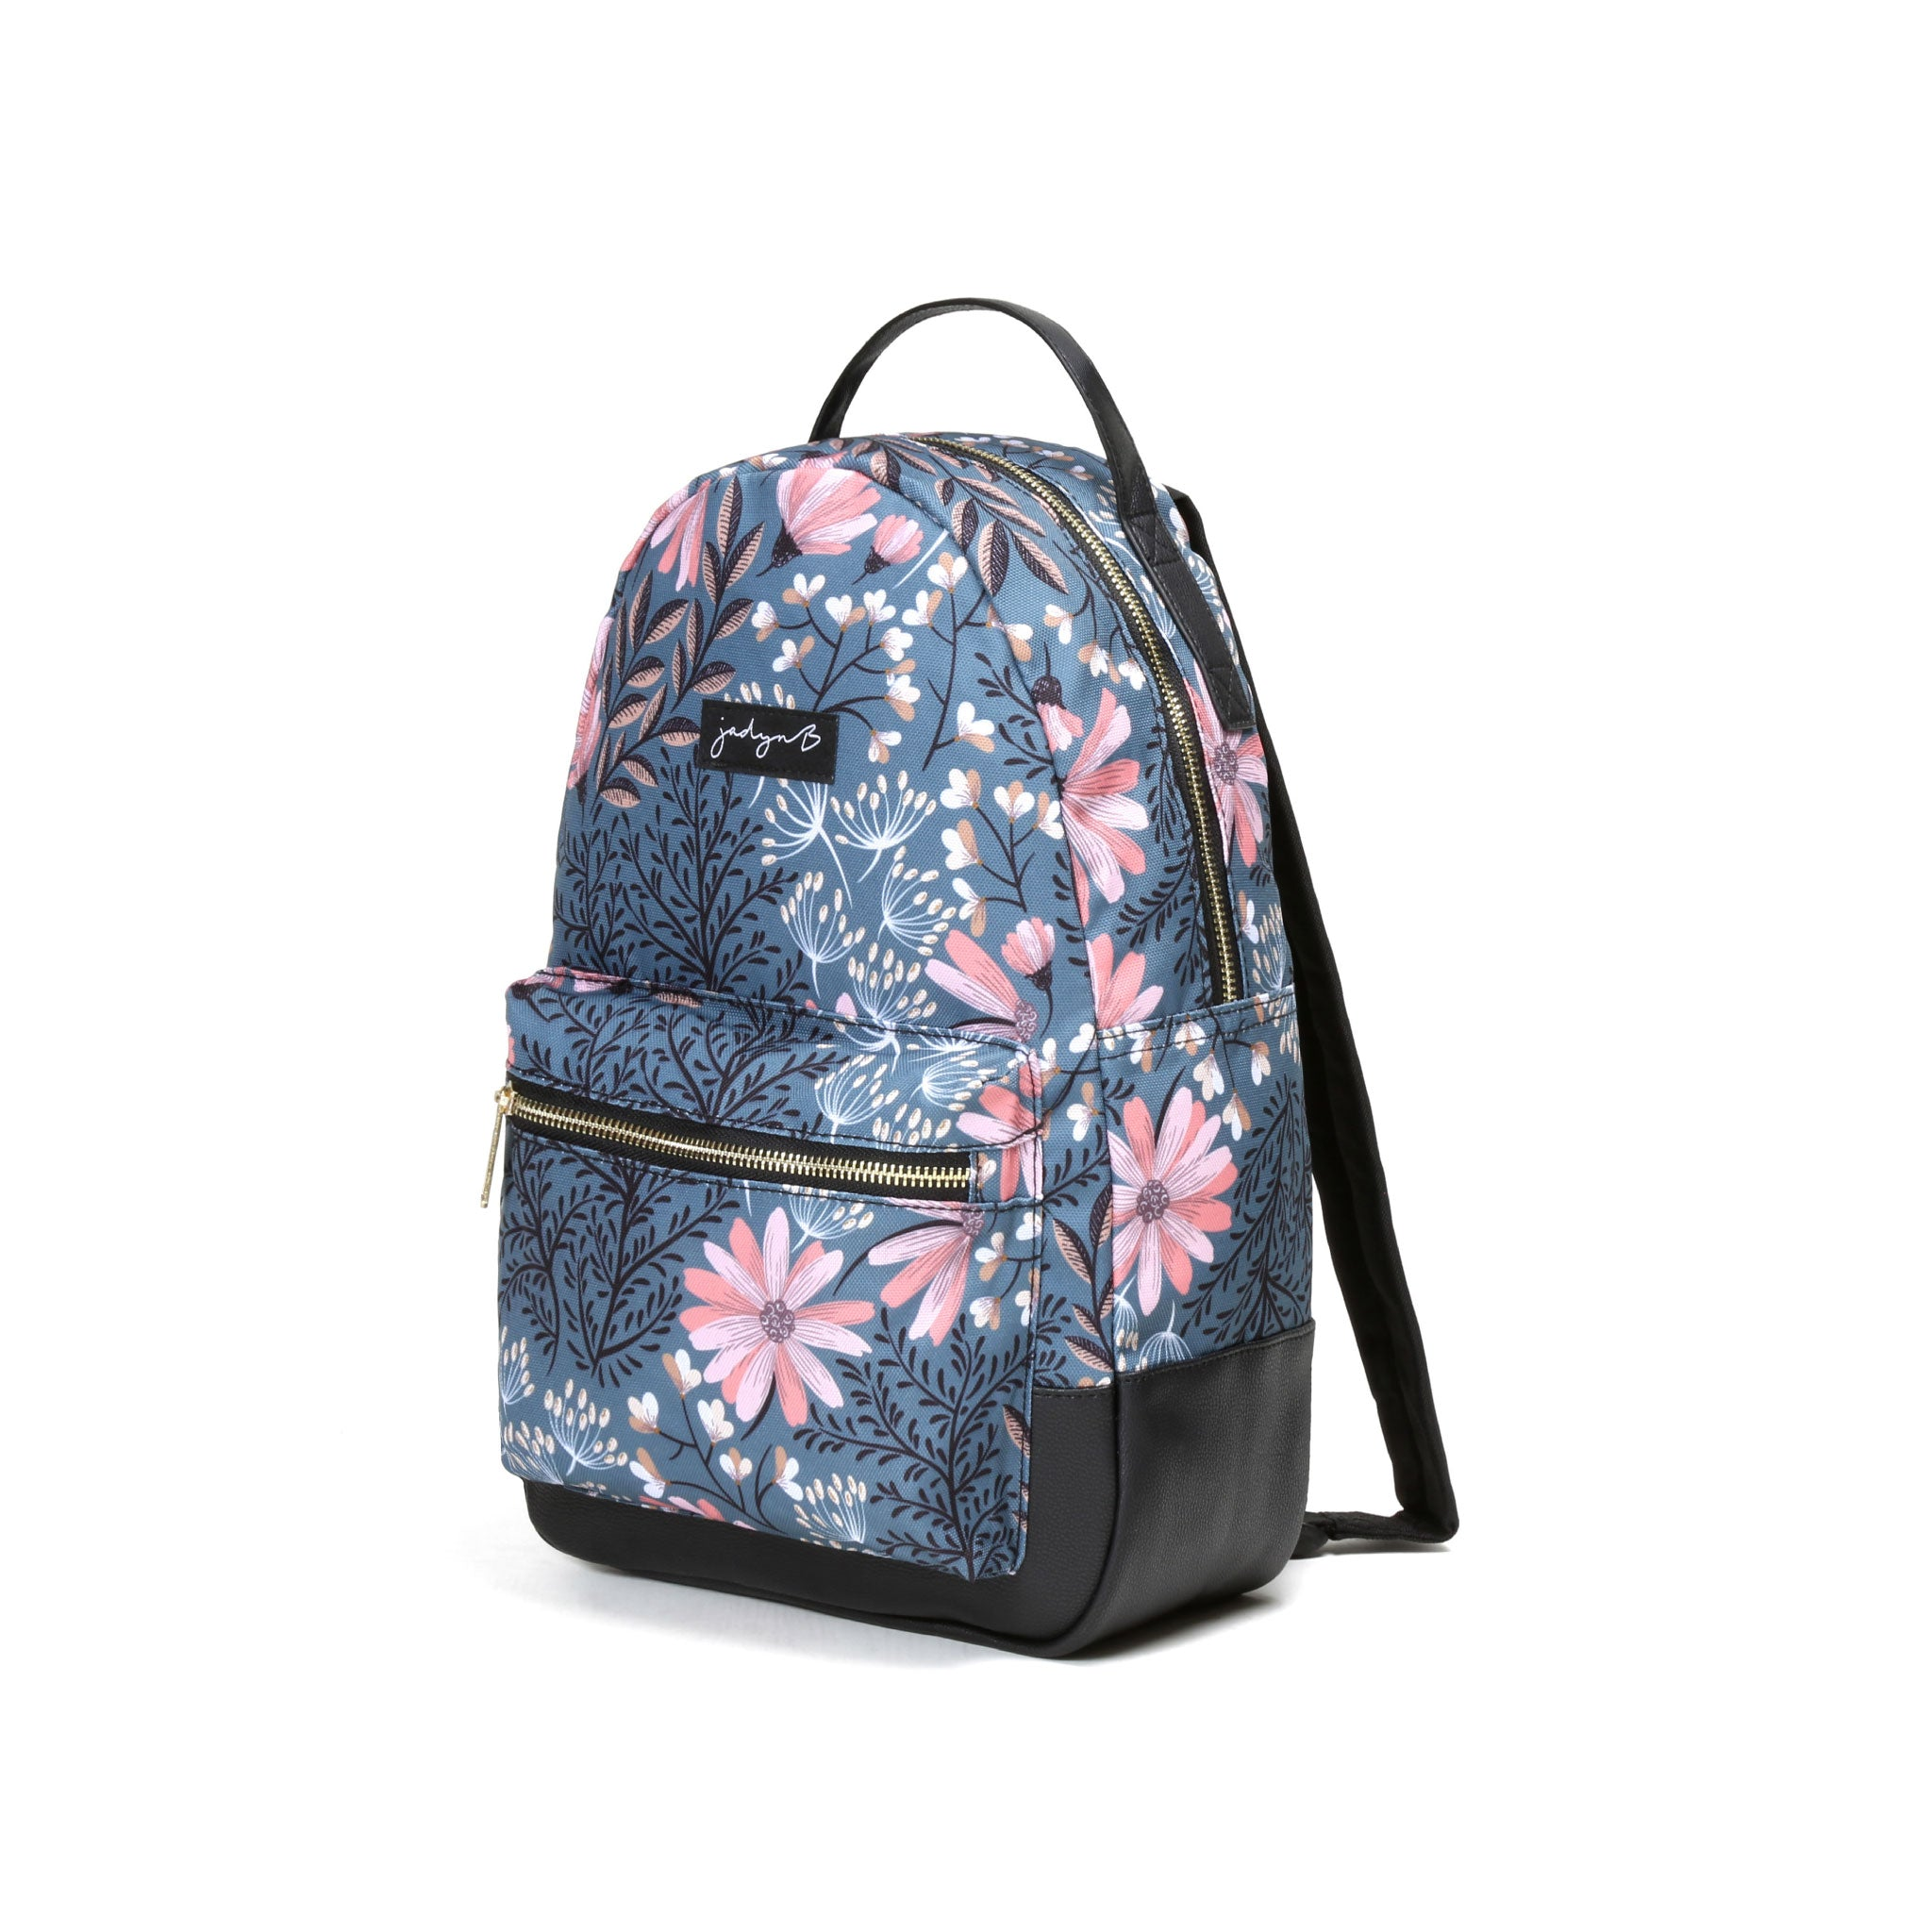 Vera Small Backpack - Navy Floral